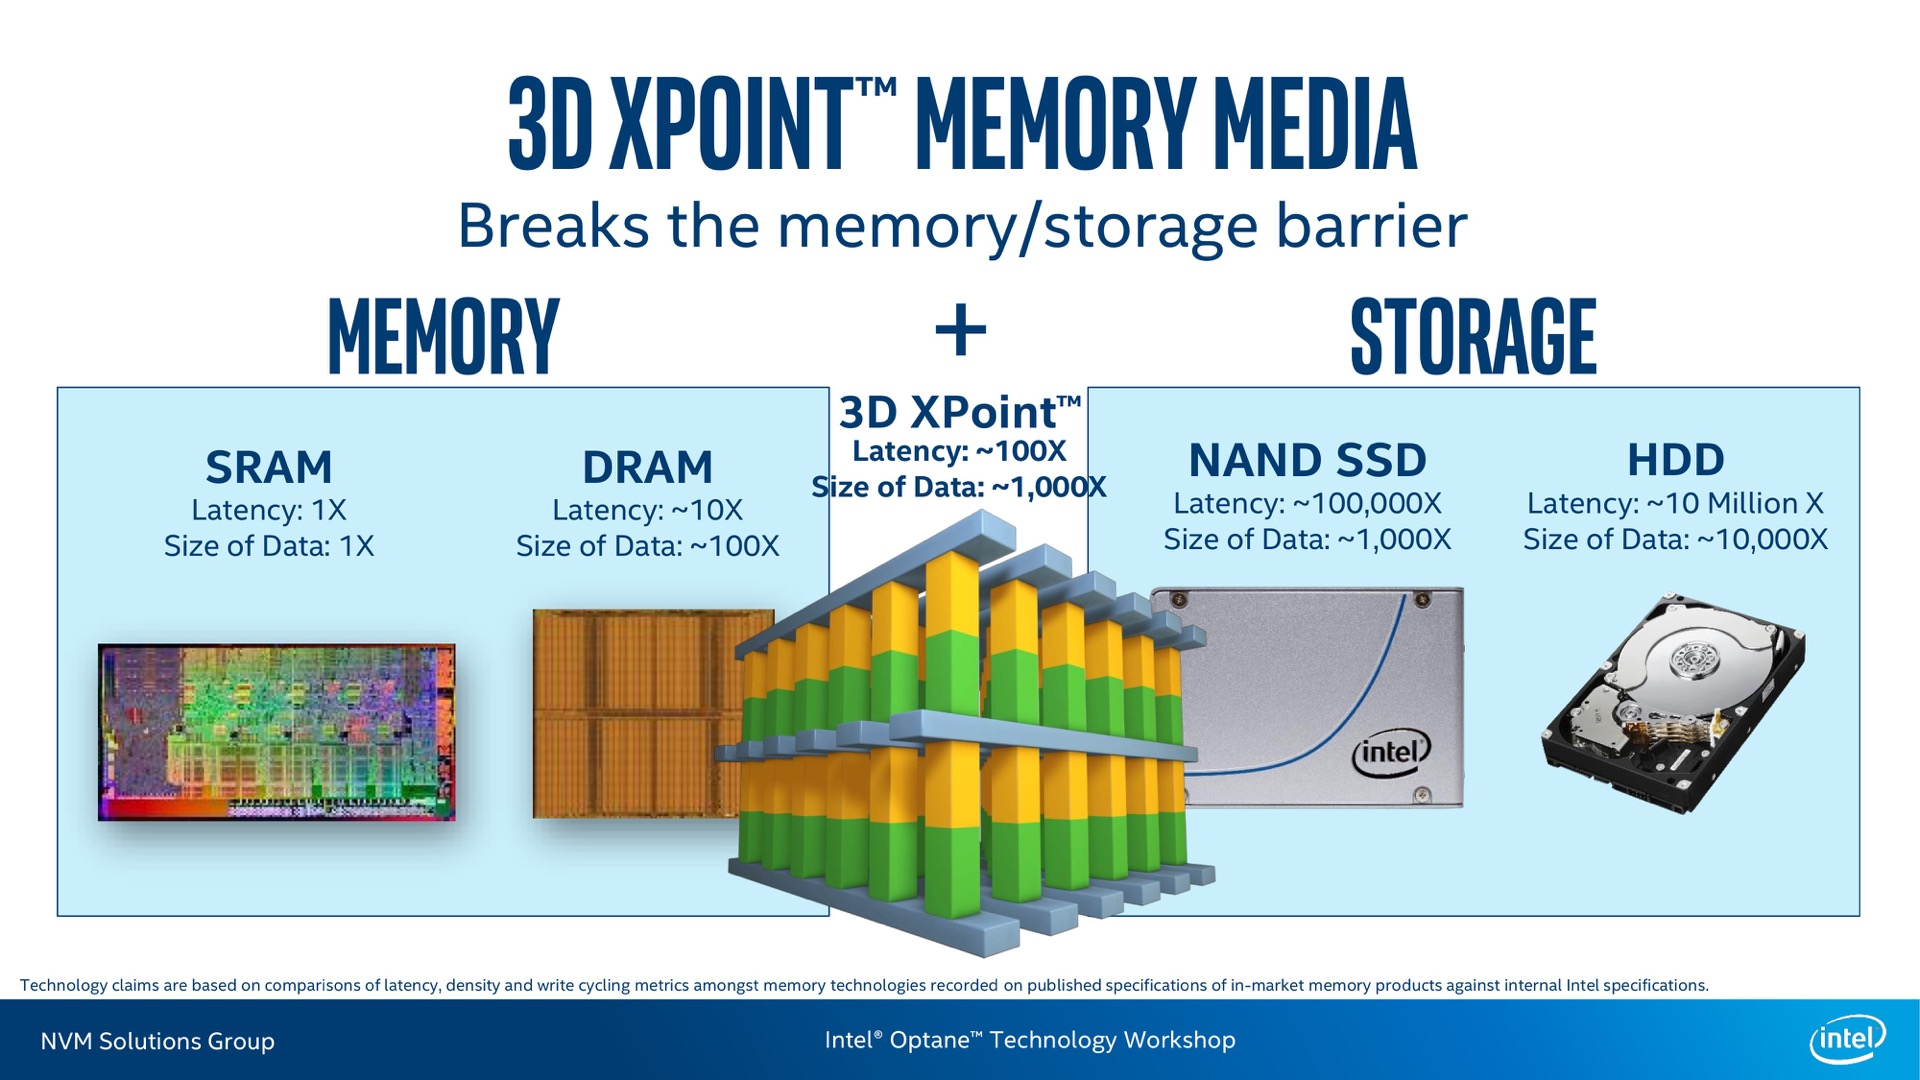 Optane and 3D XPoint memory are designed to blur the line between memory and storage. These new consumer drives are really only about storage, though.